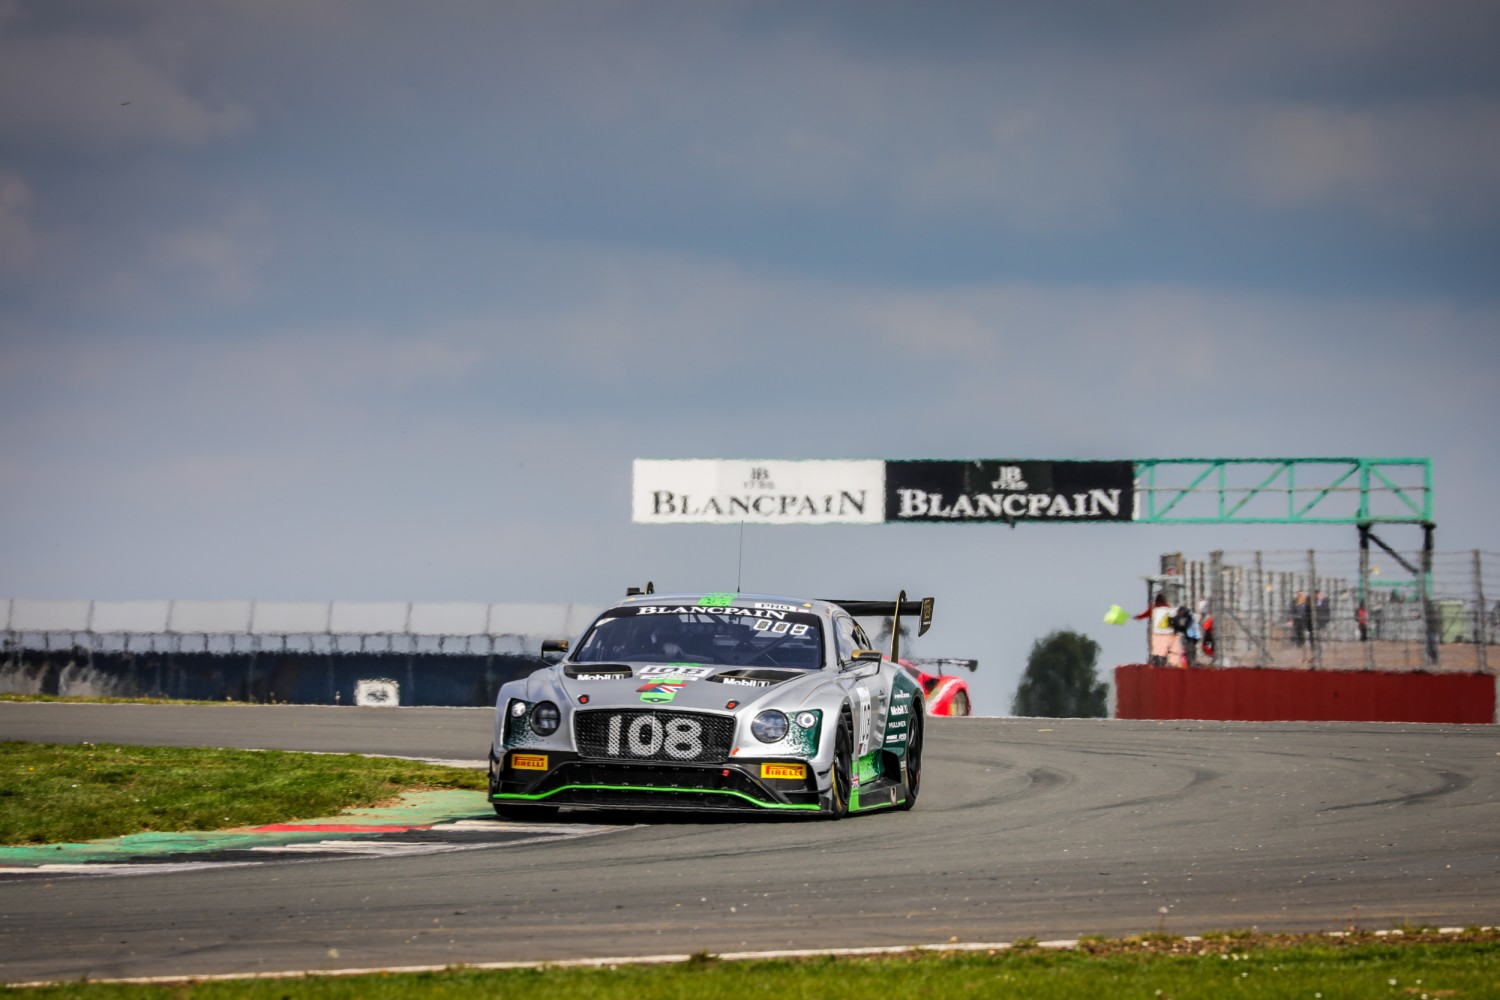 #108 Bentley Team M-Sport GBR Bentley Continental GT3 Alex Buncombe GBR Andy Soucek ESP Maxime Soulet BEL -, Free Practice  | SRO Motorsports Group